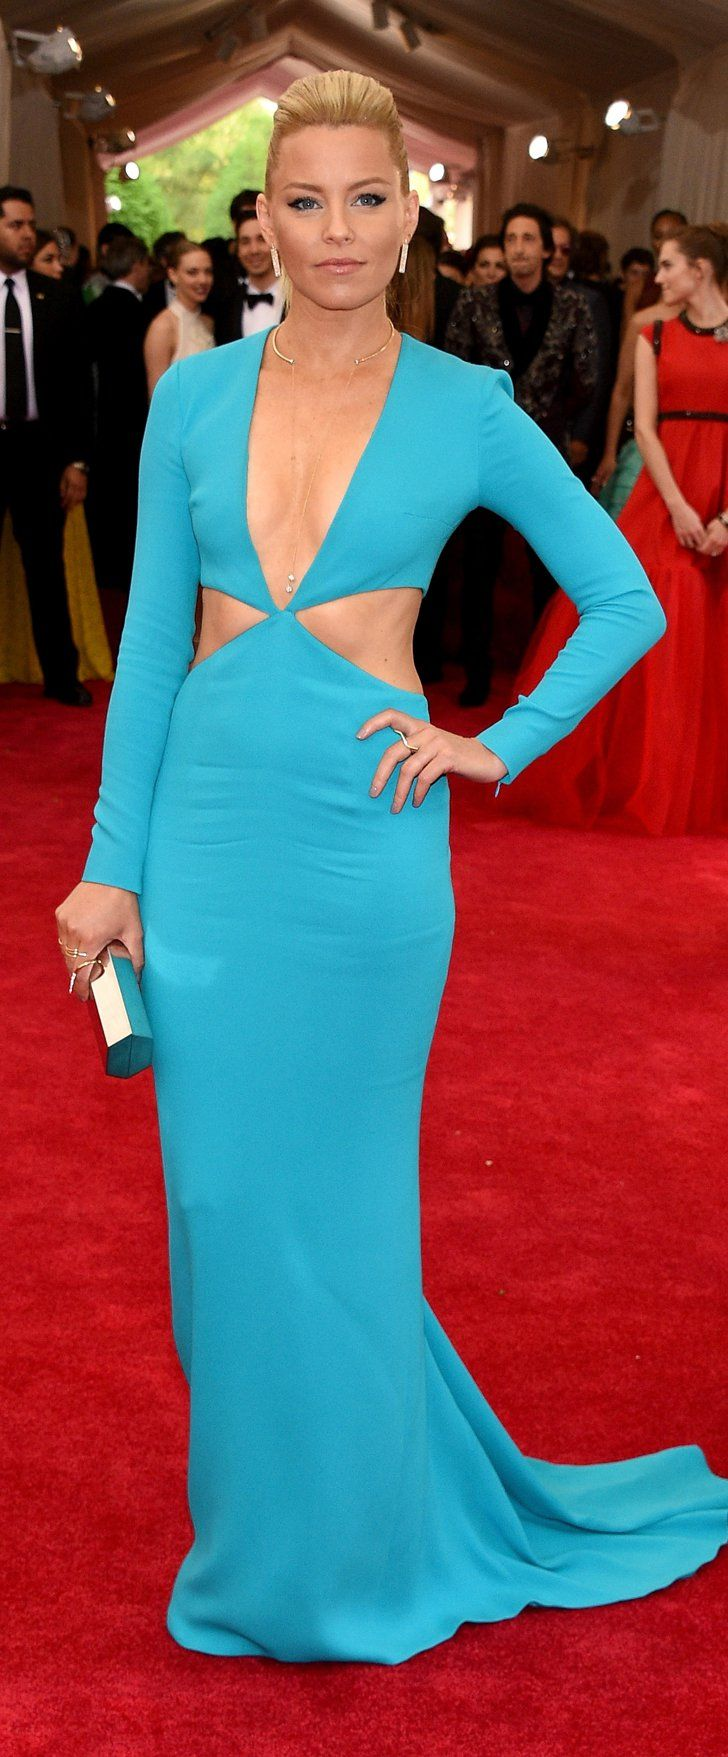 Pin for Later: Elizabeth Banks Just Had a Supersexy J Lo Moment at the Met Gala